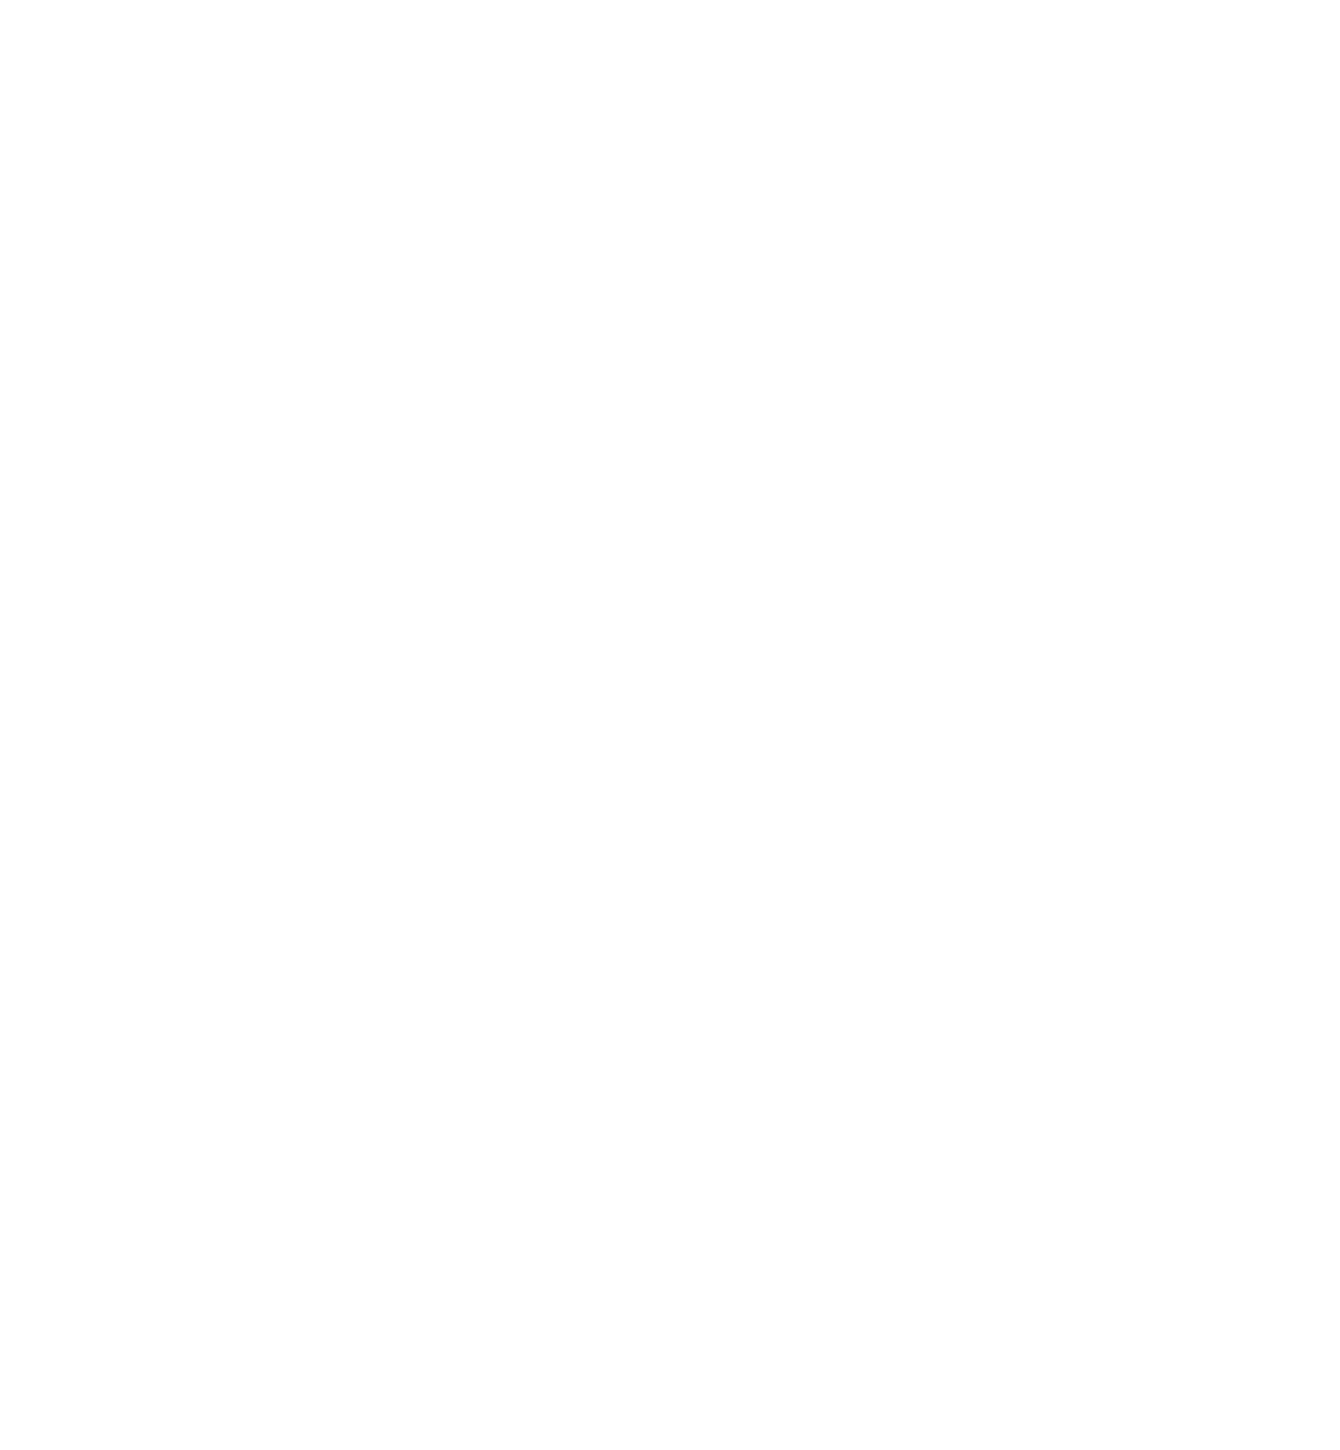 ted limpert